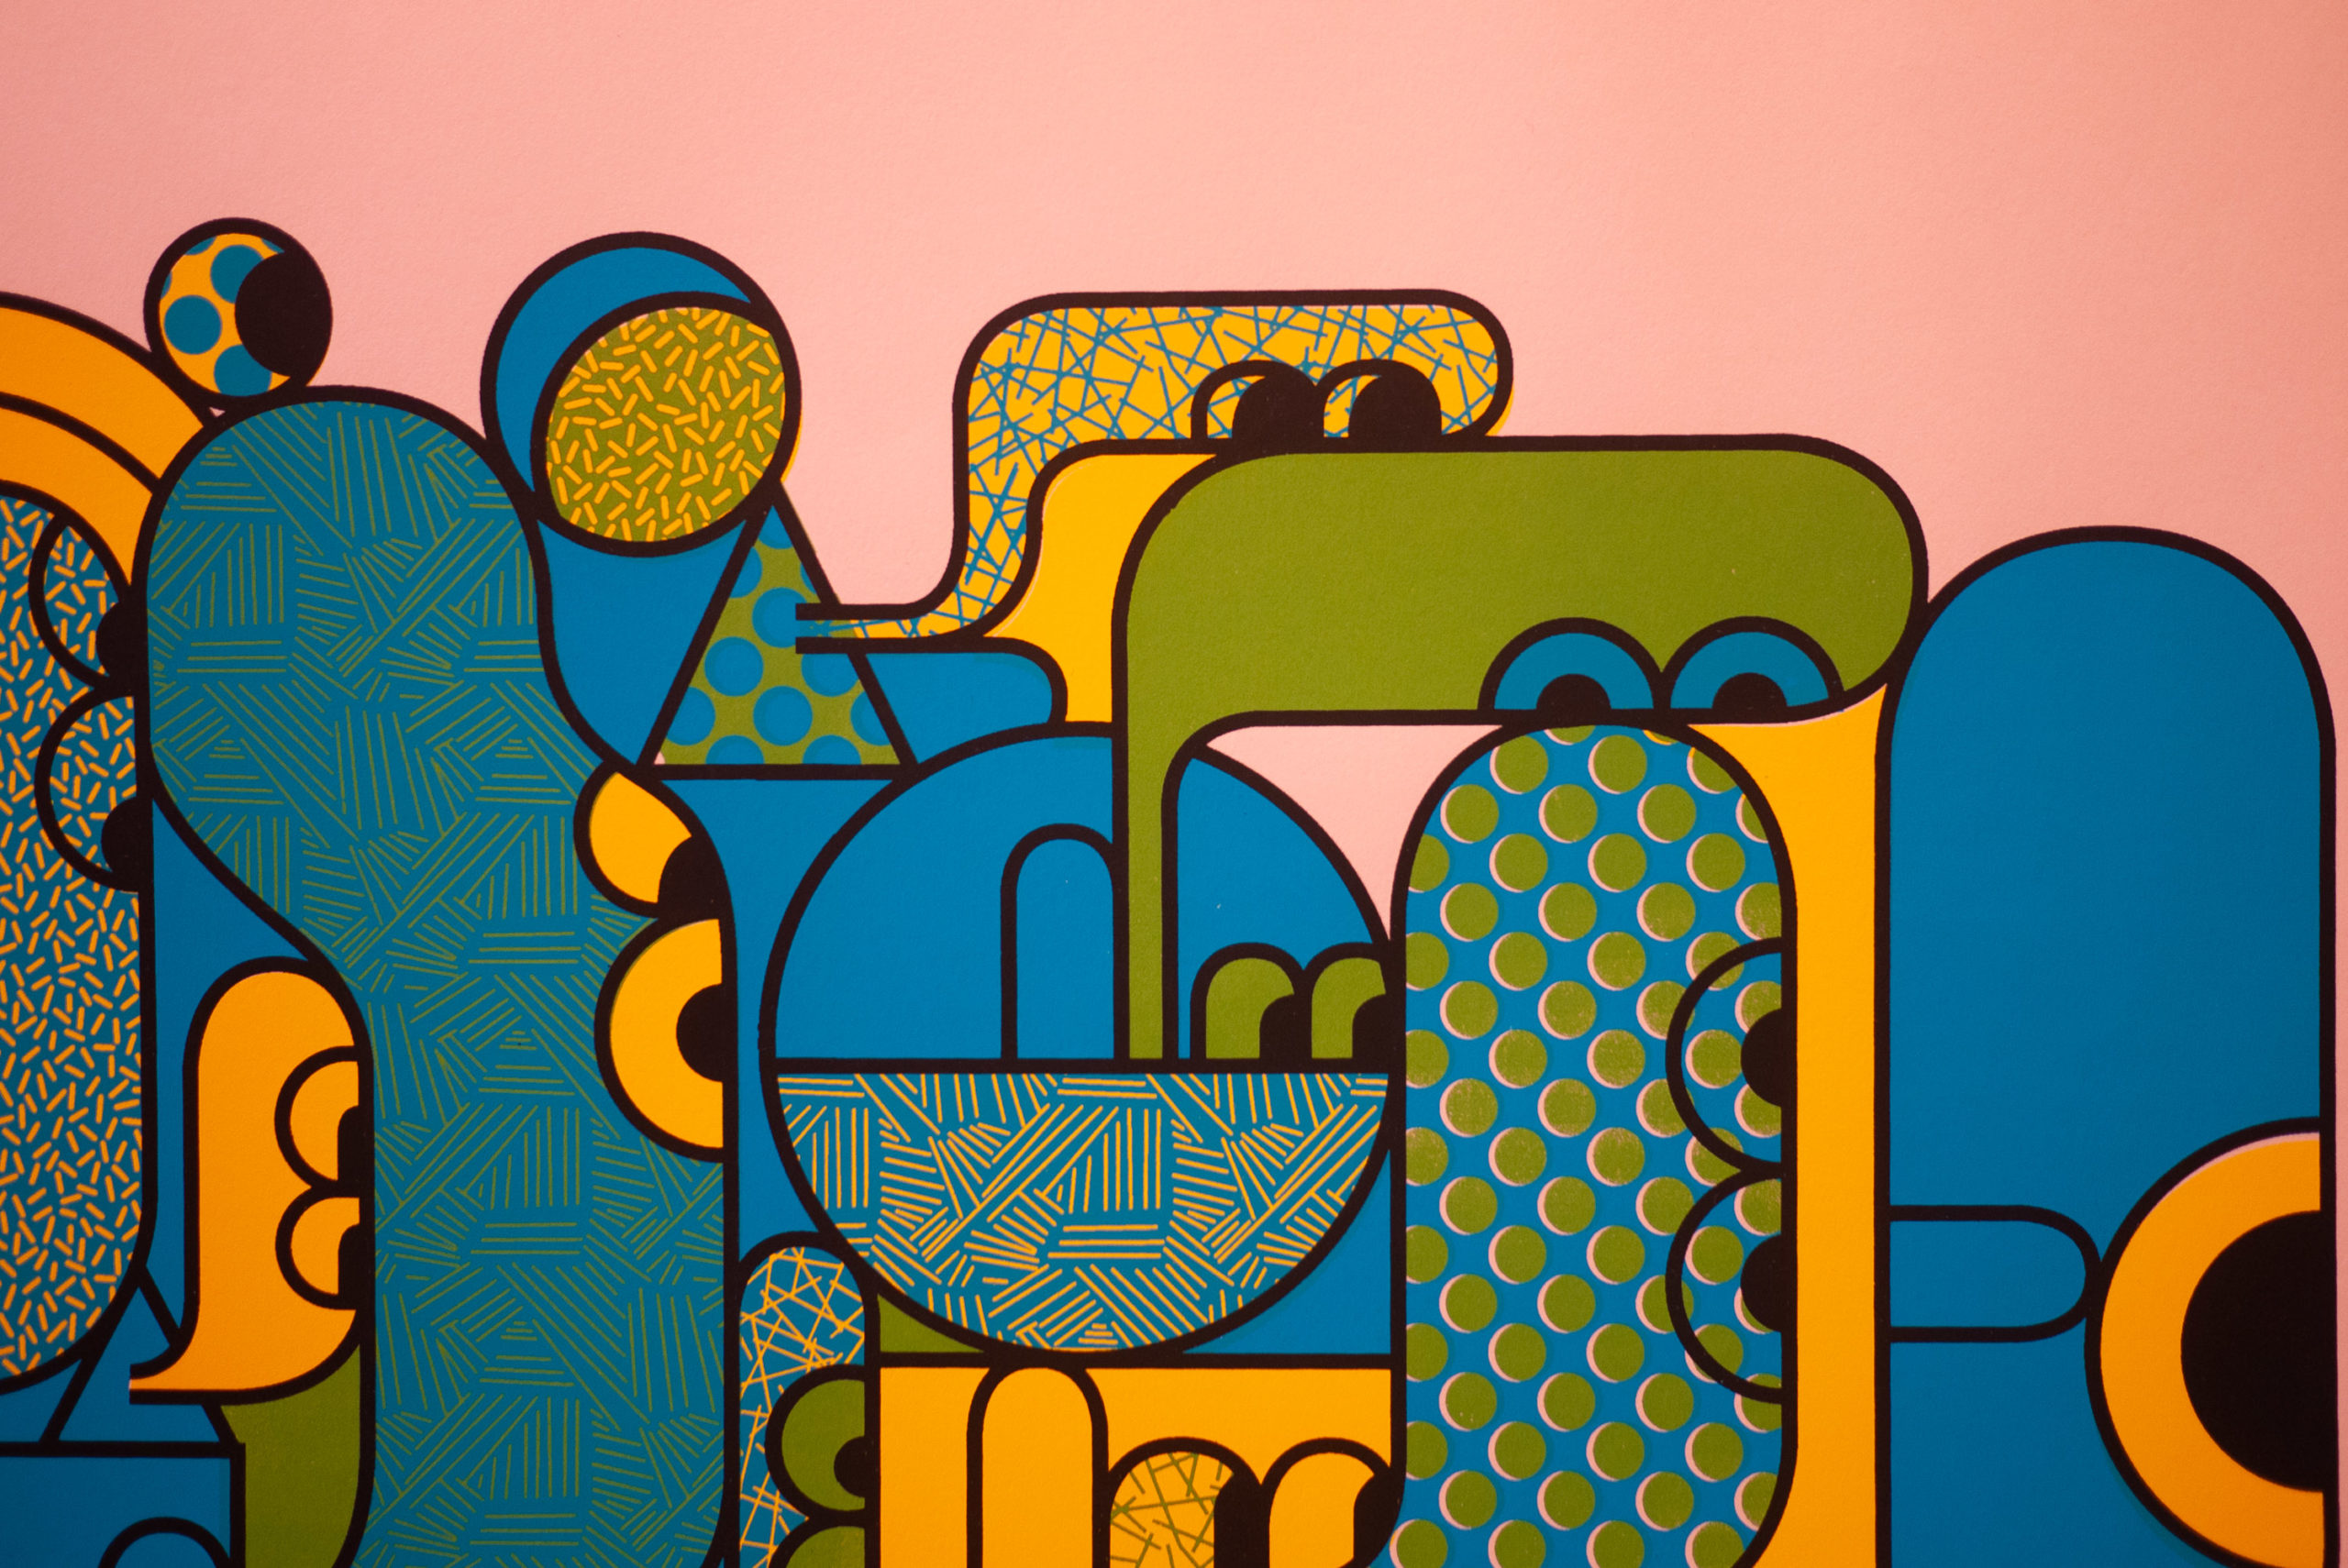 Abstract people in vribrant and pastel colors with thick lines